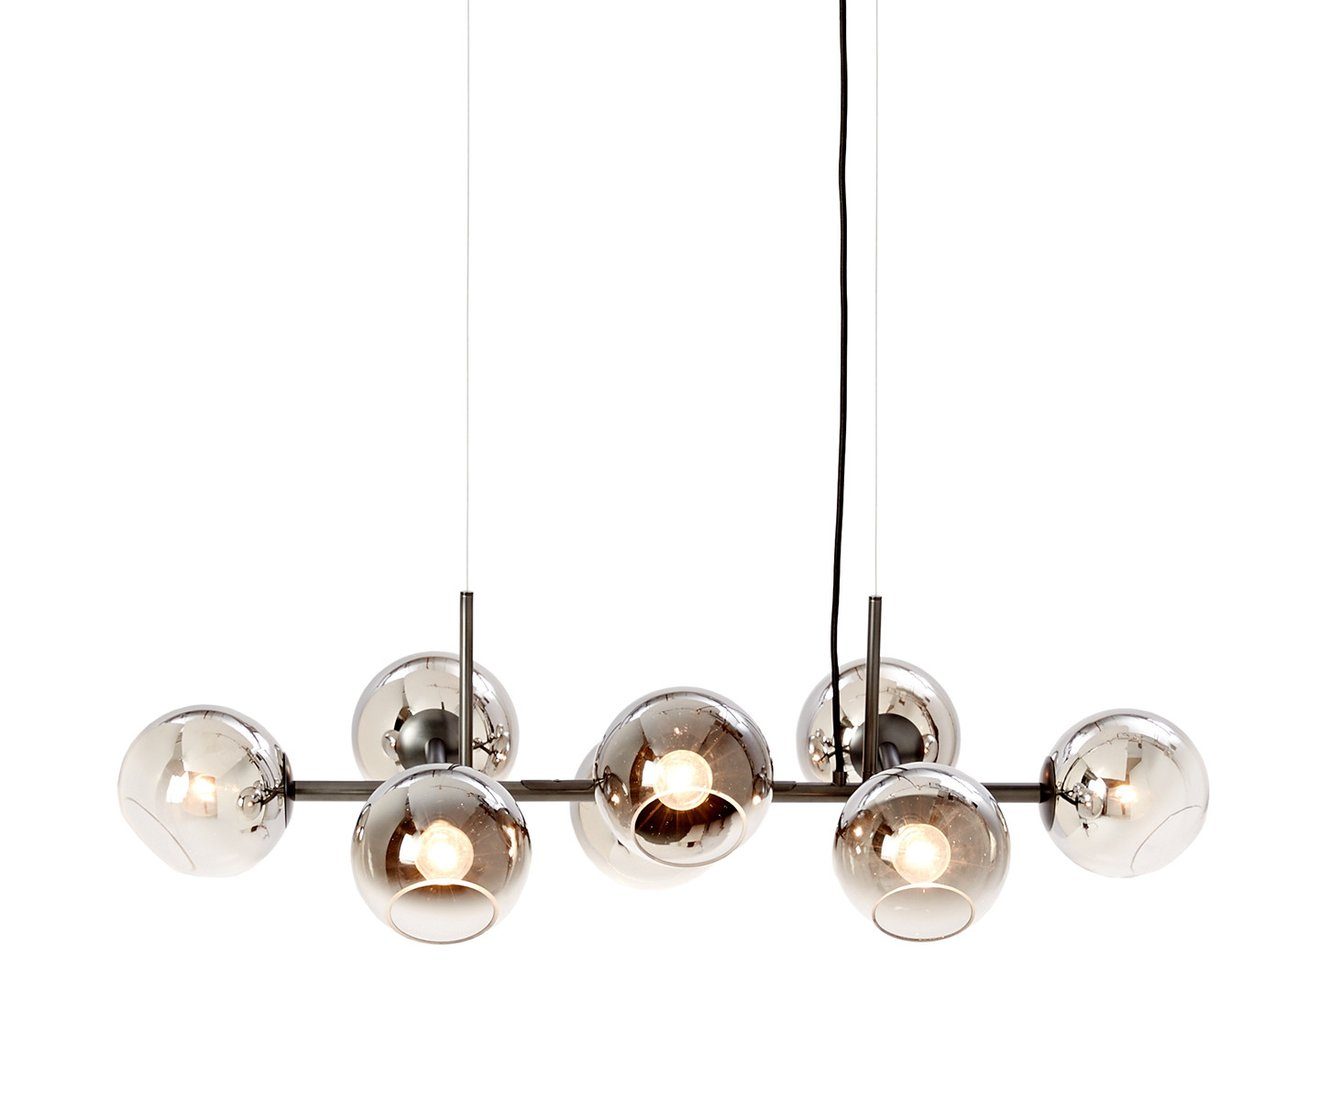 West Elm Rectangular Capiz Chandelier | Smoked Glass Chandelier | West Elm Chandelier